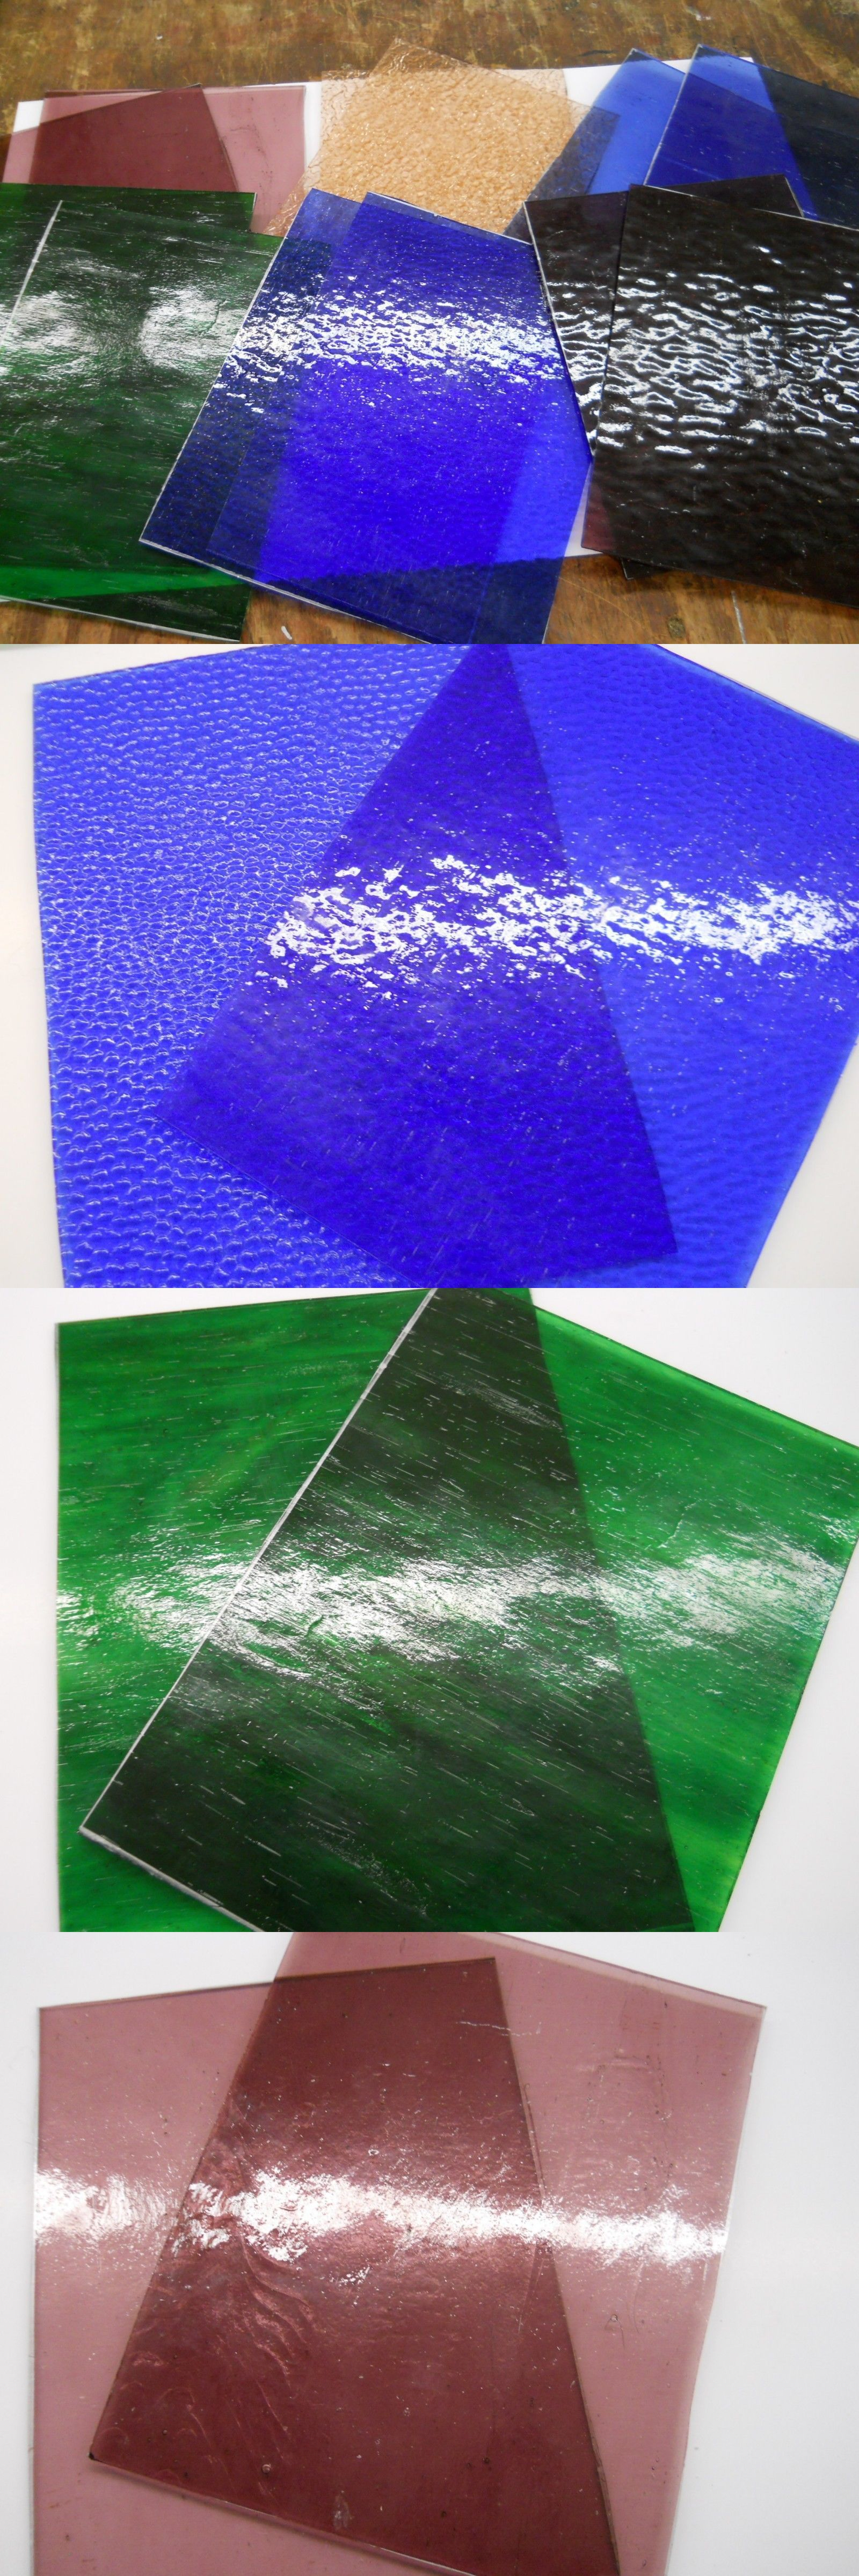 Stained Glass Supplies 4770 12 Stained Glass Sheets 6 Colors 2